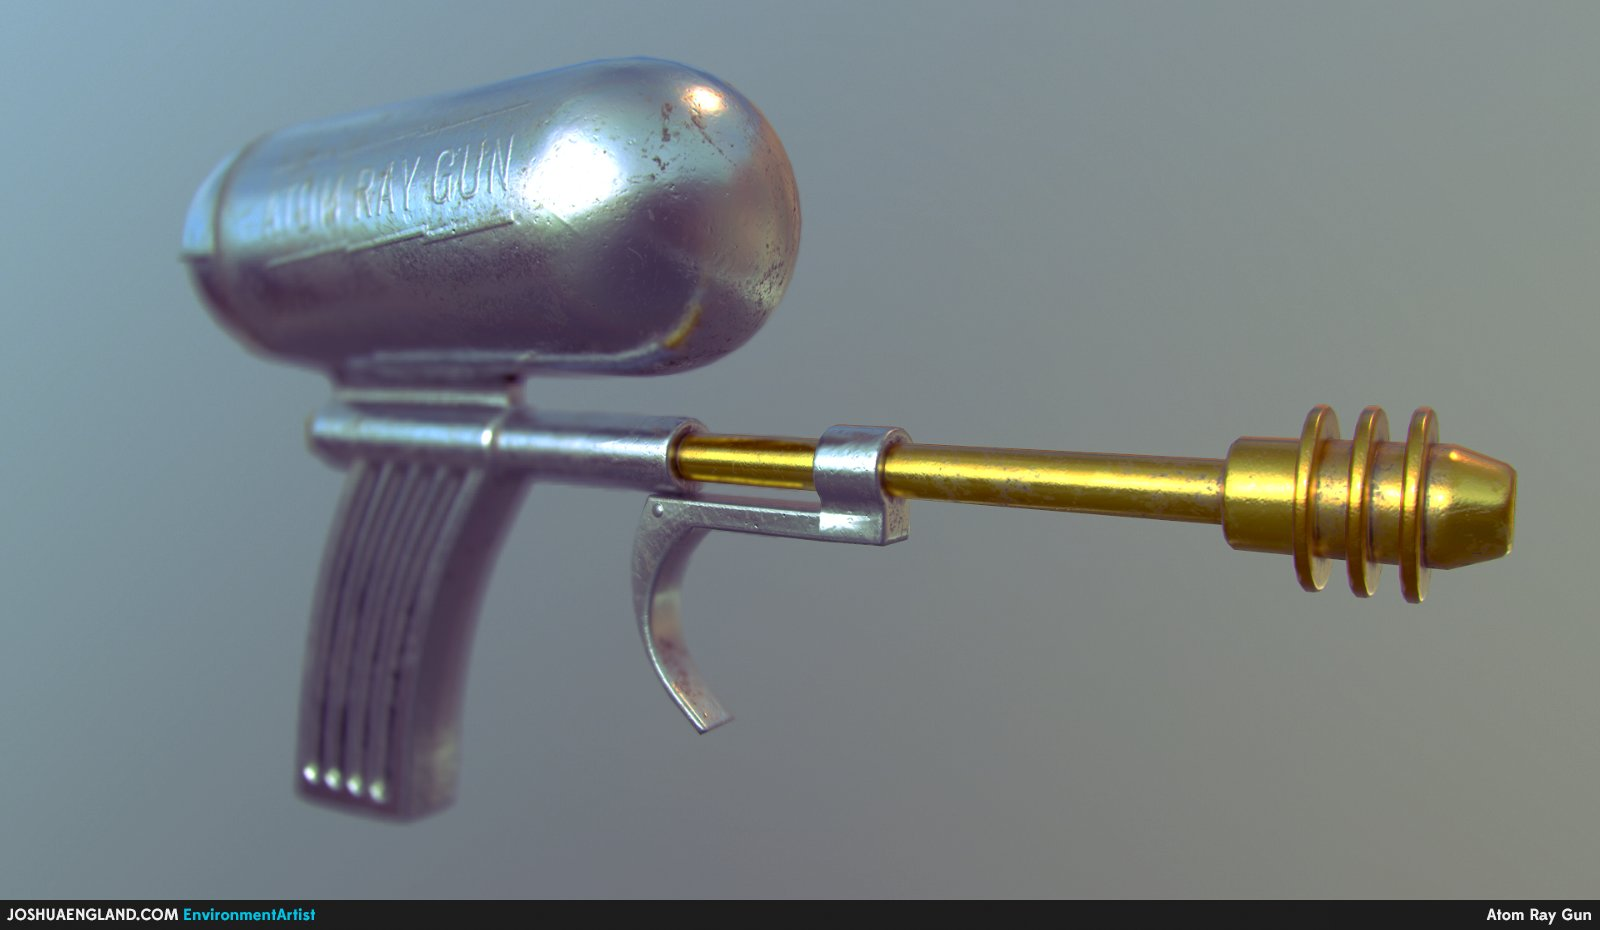 Atom Ray Gun Beauty